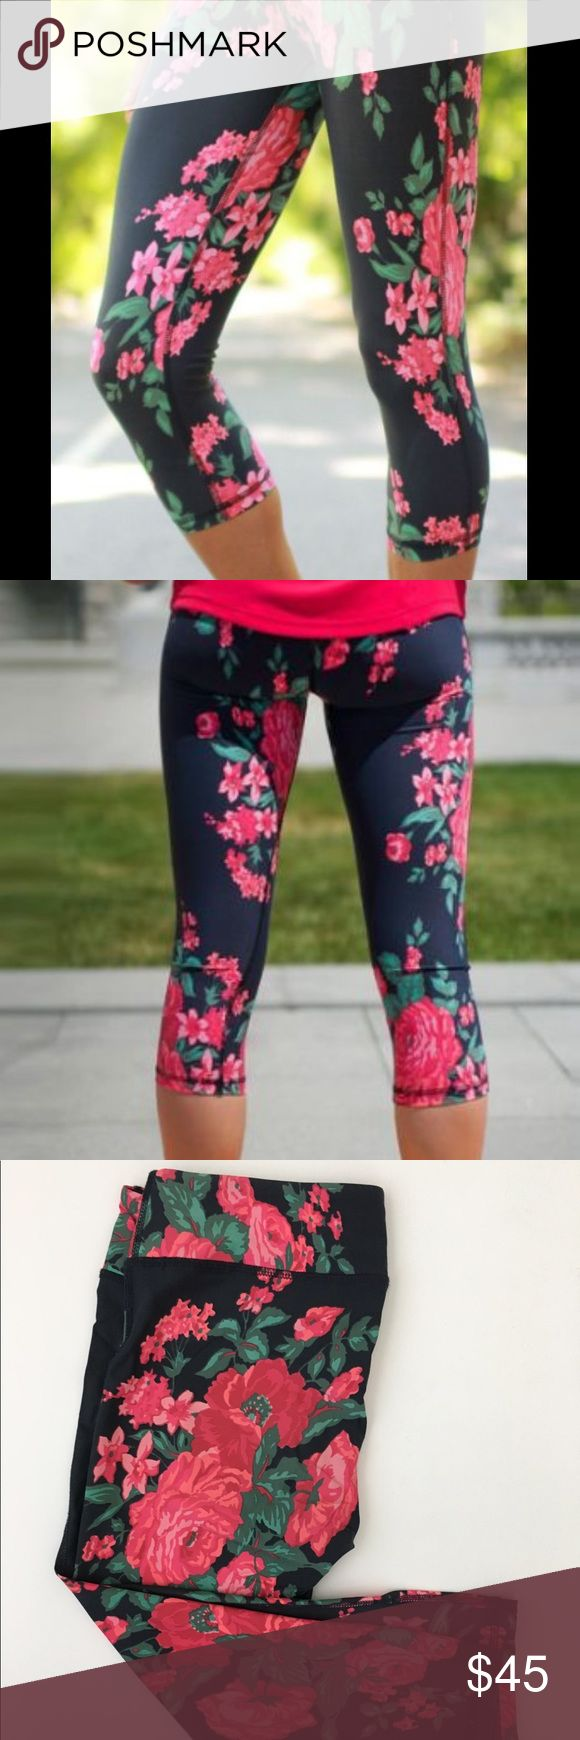 Albion Fit Antigua Leggings Limited edition Albion fit crib leggings hit just above the calf. Made with premium compression fabric, great for workouts! Wide waste band make them so comfortable. These are in excellent condition! albion fit Pants Leggings